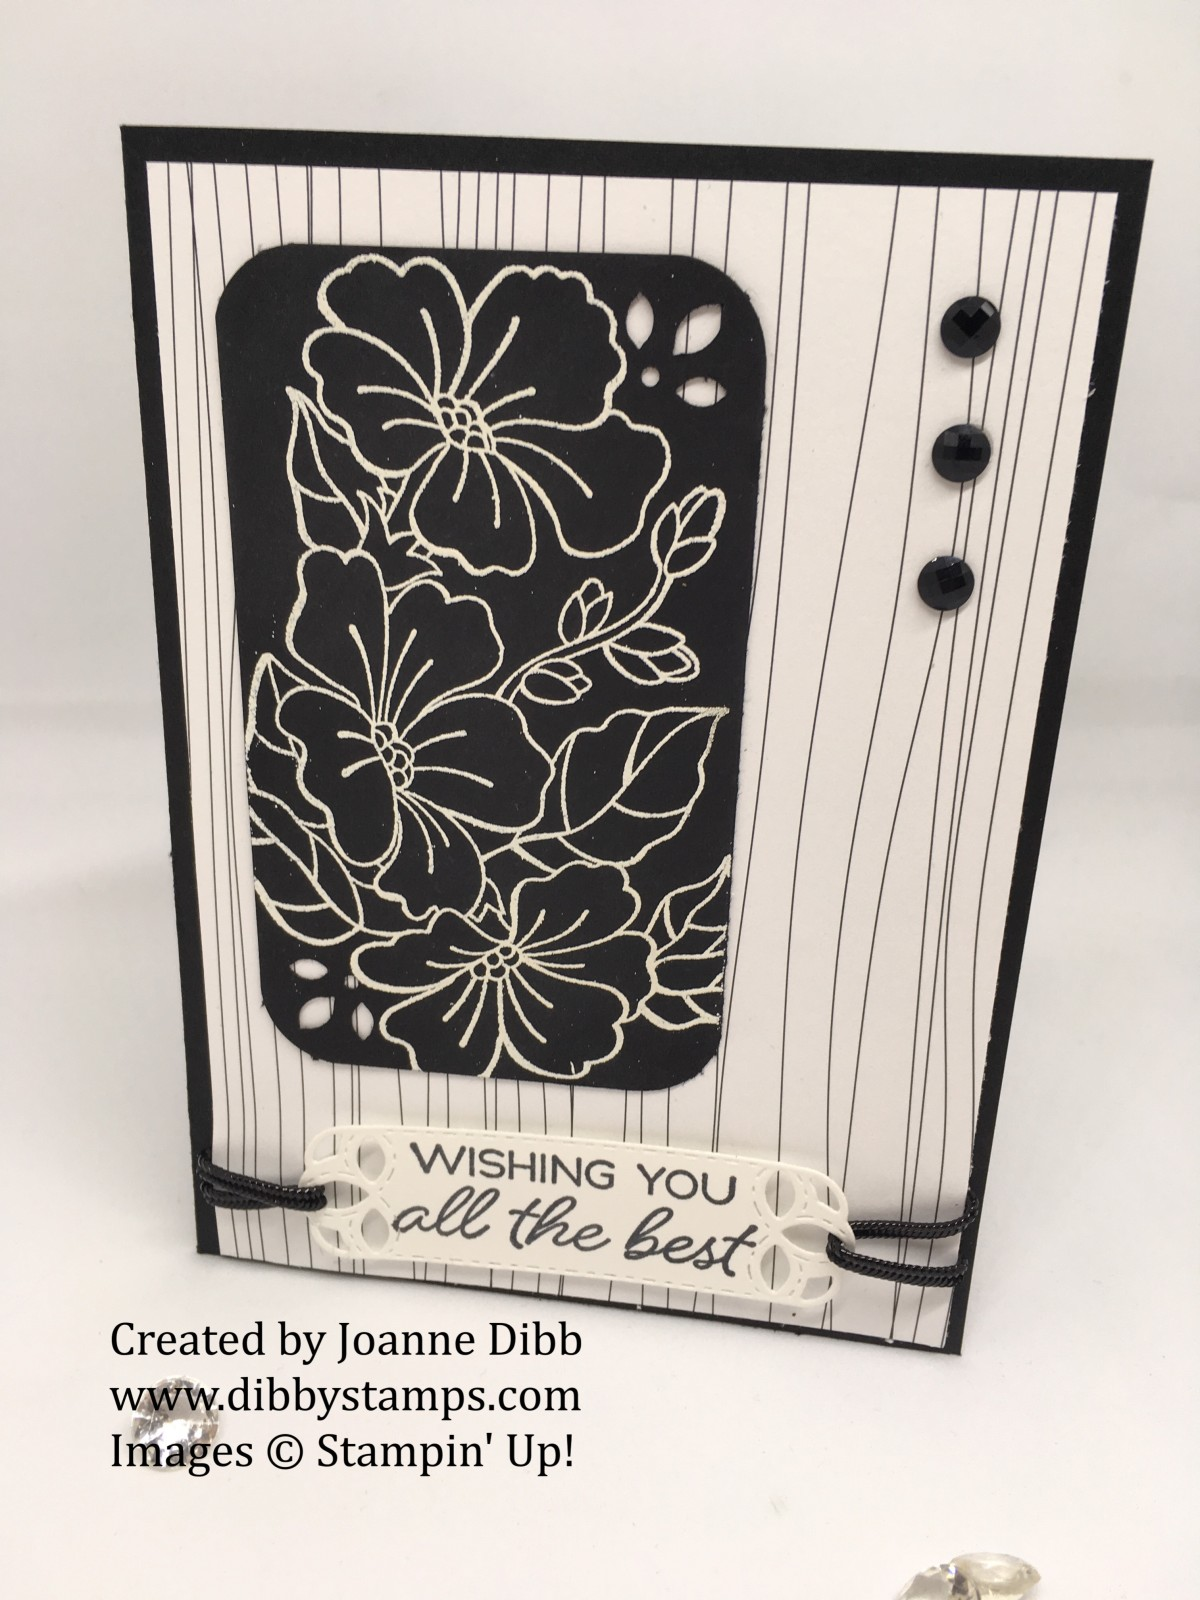 Monochromatic Floral card with BlendedSeasons